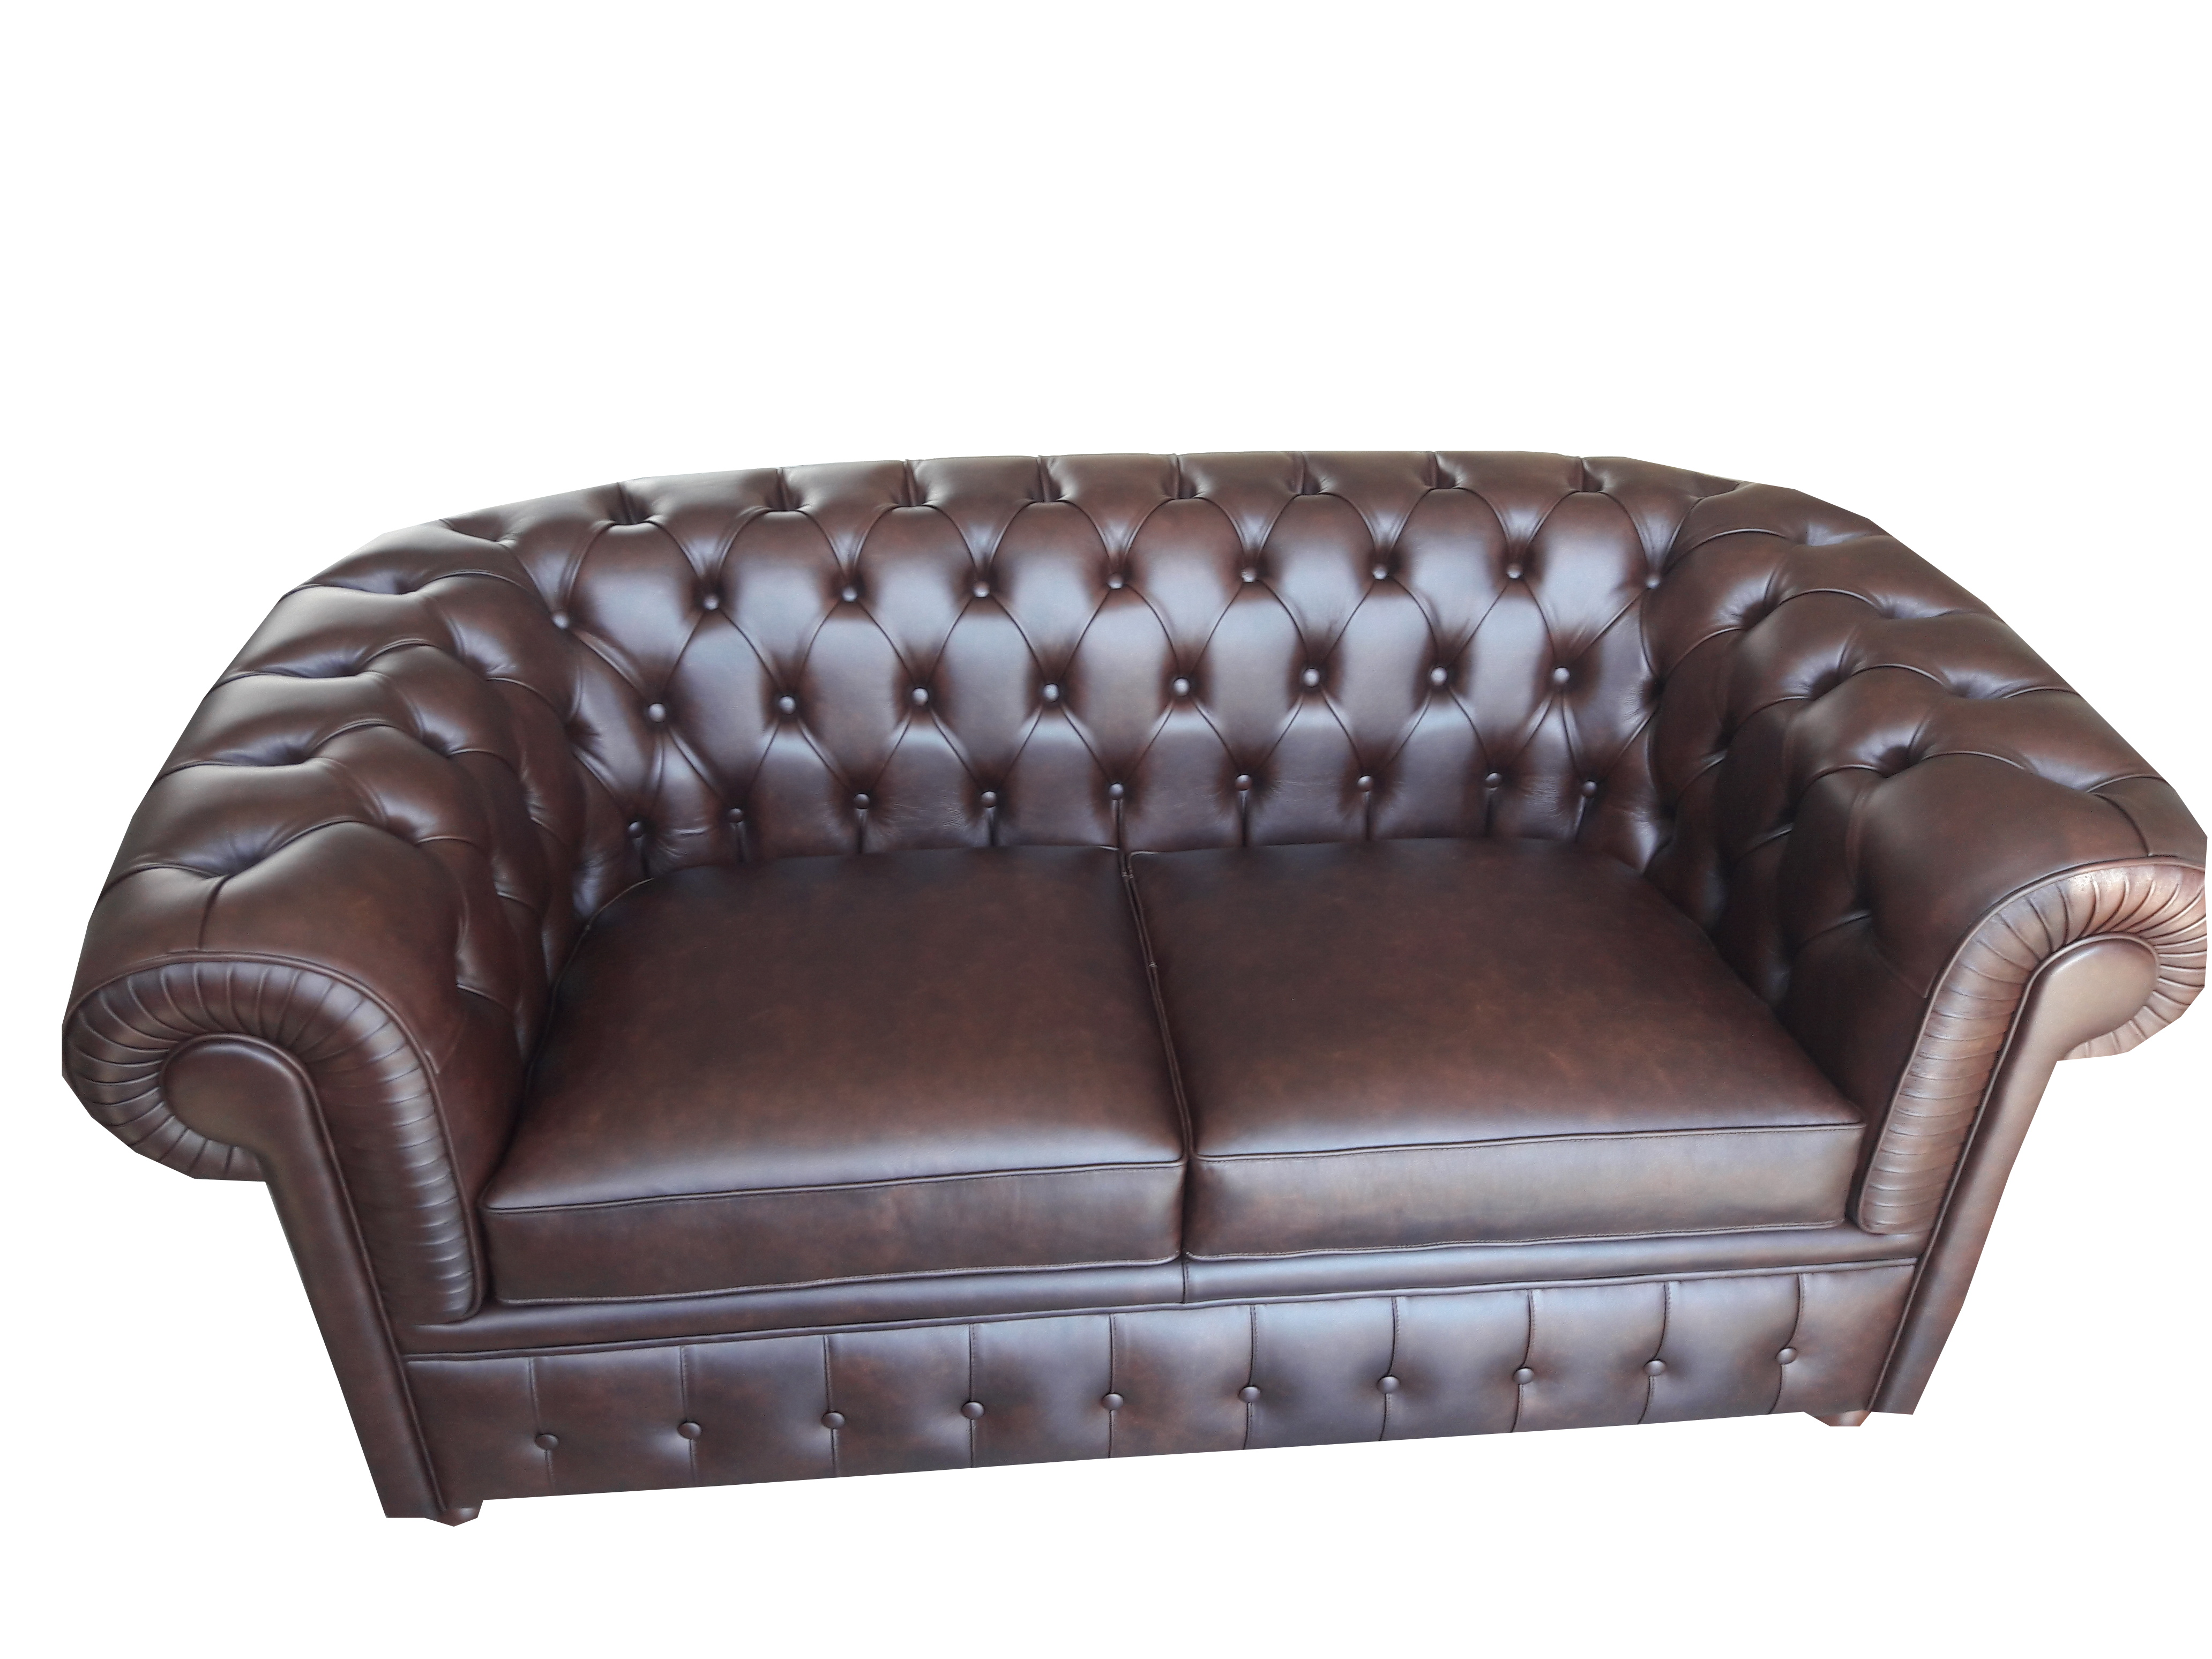 Divano chesterfield 2 posti cm 165x85 h cm 72 in vera pelle for Divano 2 posti amazon